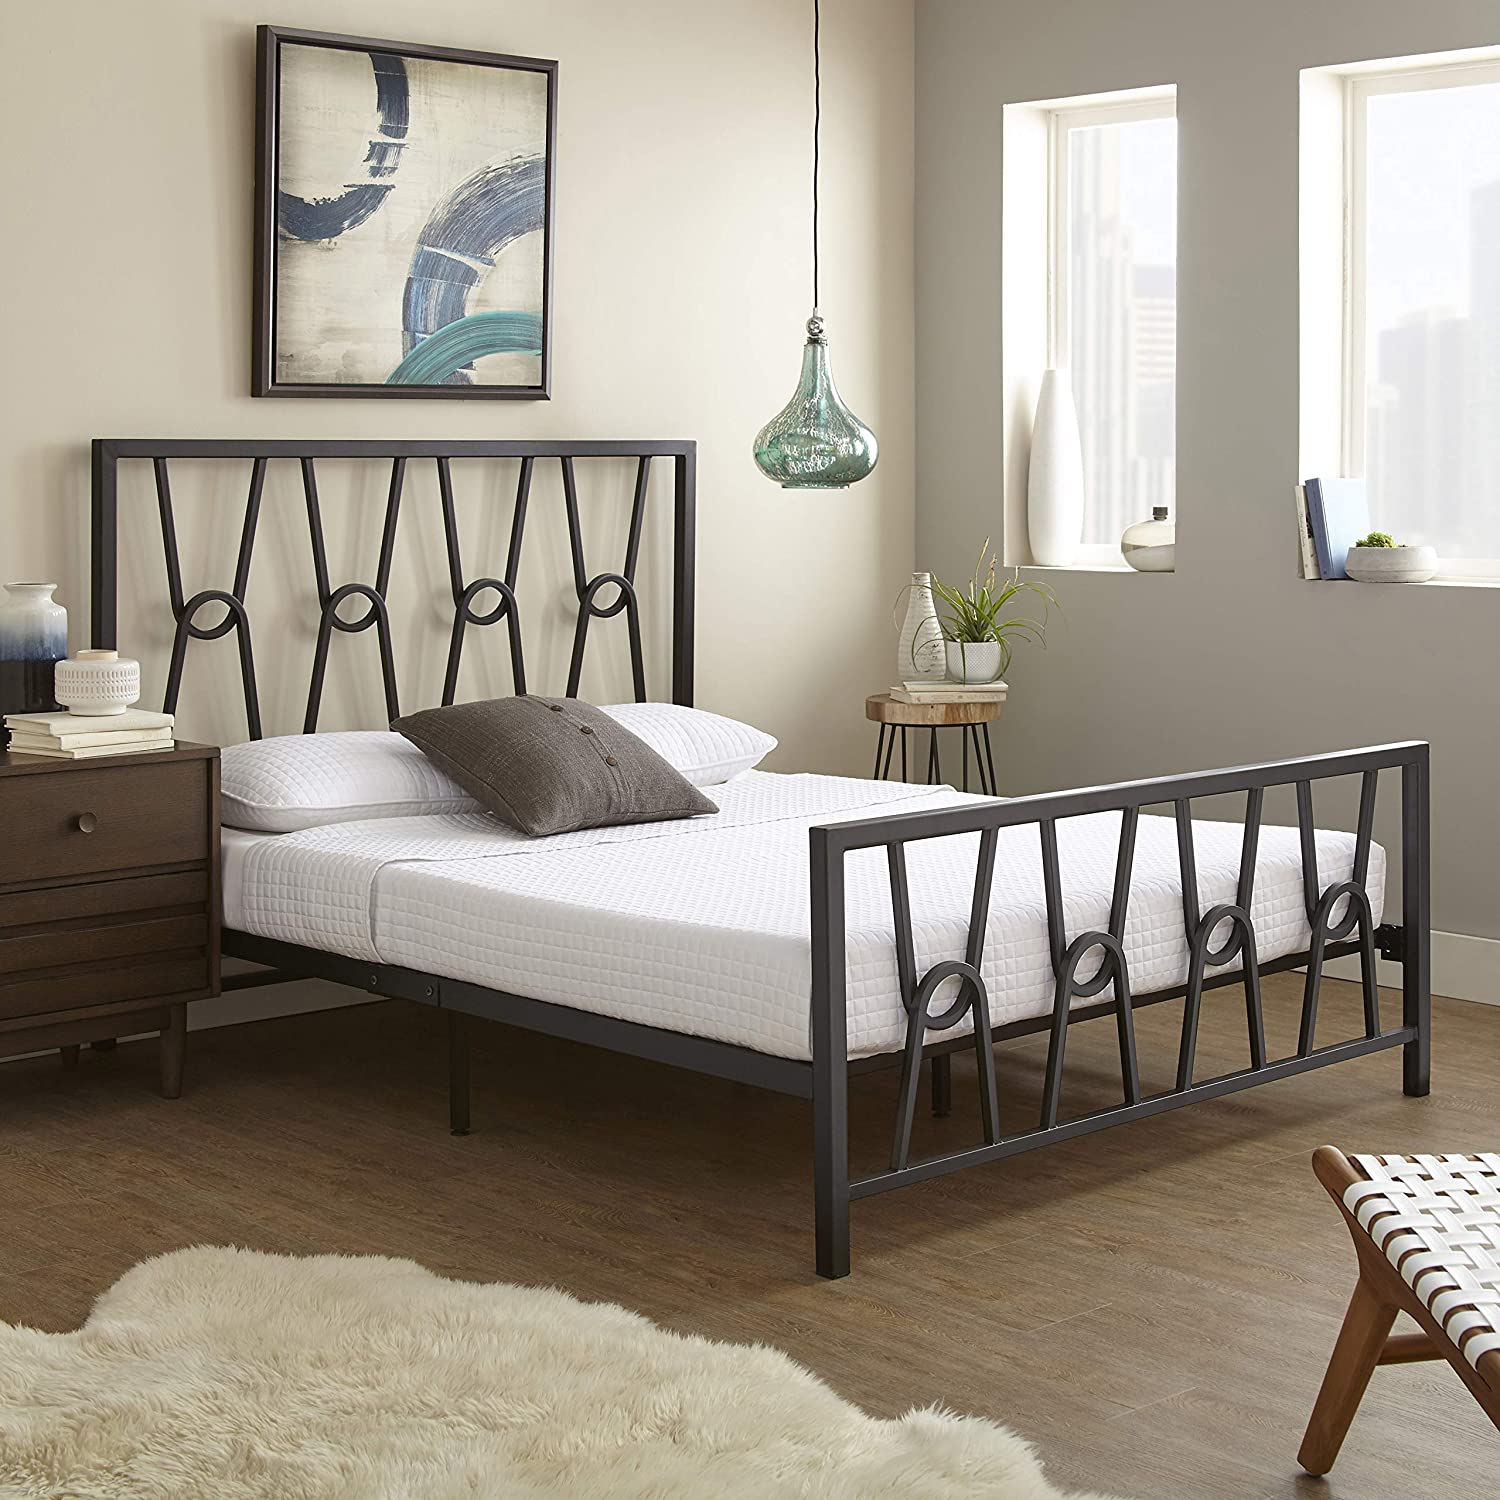 Boyd Sleep Pierre Metal Platform Bed Frame/Mattress Foundation with Headboard and Footboard, Queen